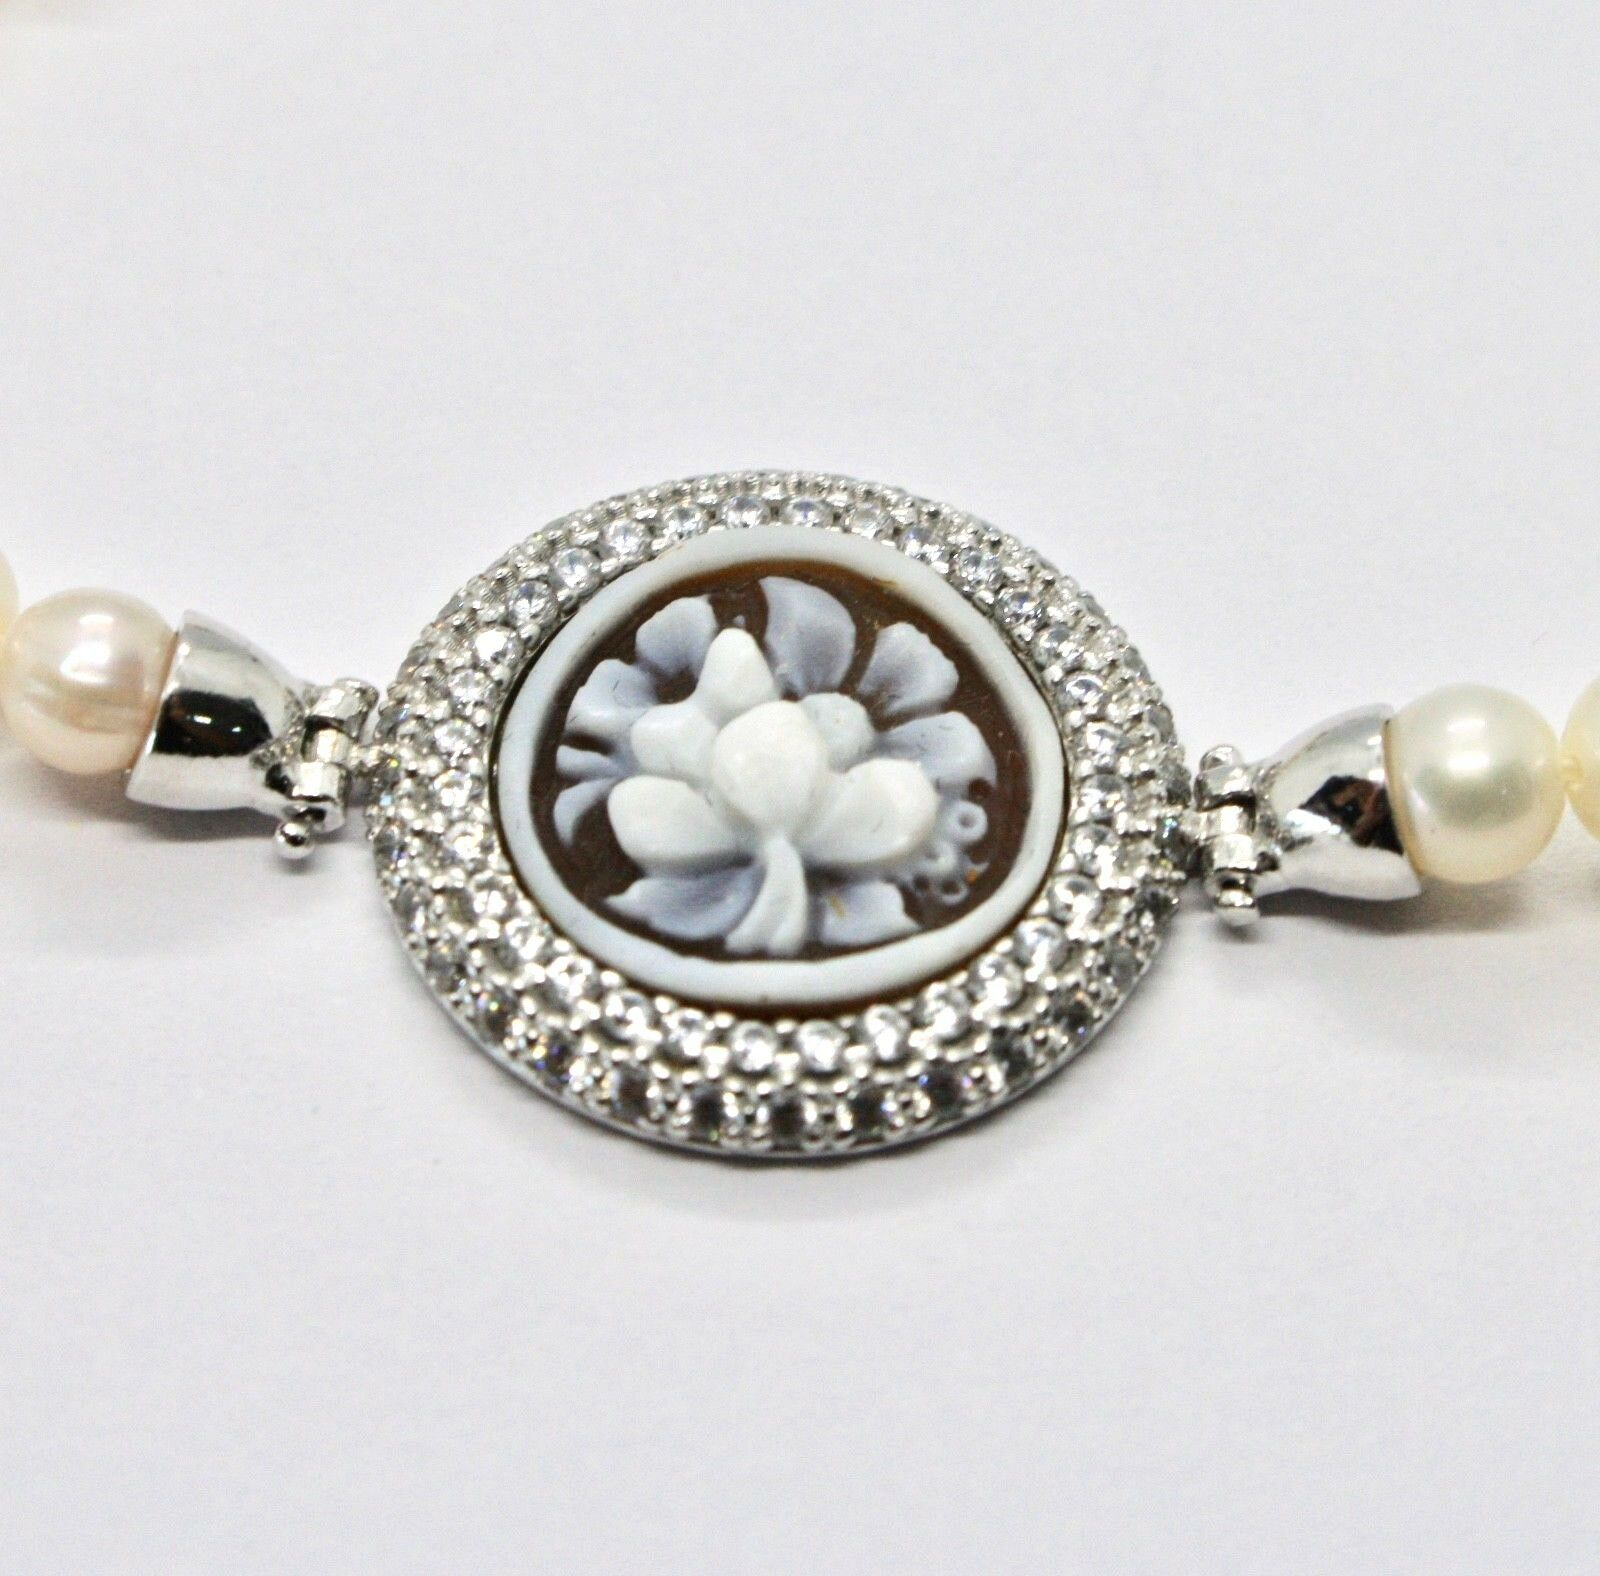 SILVER 925 BRACELET WITH PEARLS FRESH WATER CAMEO CAMEO ZIRCON CUBIC